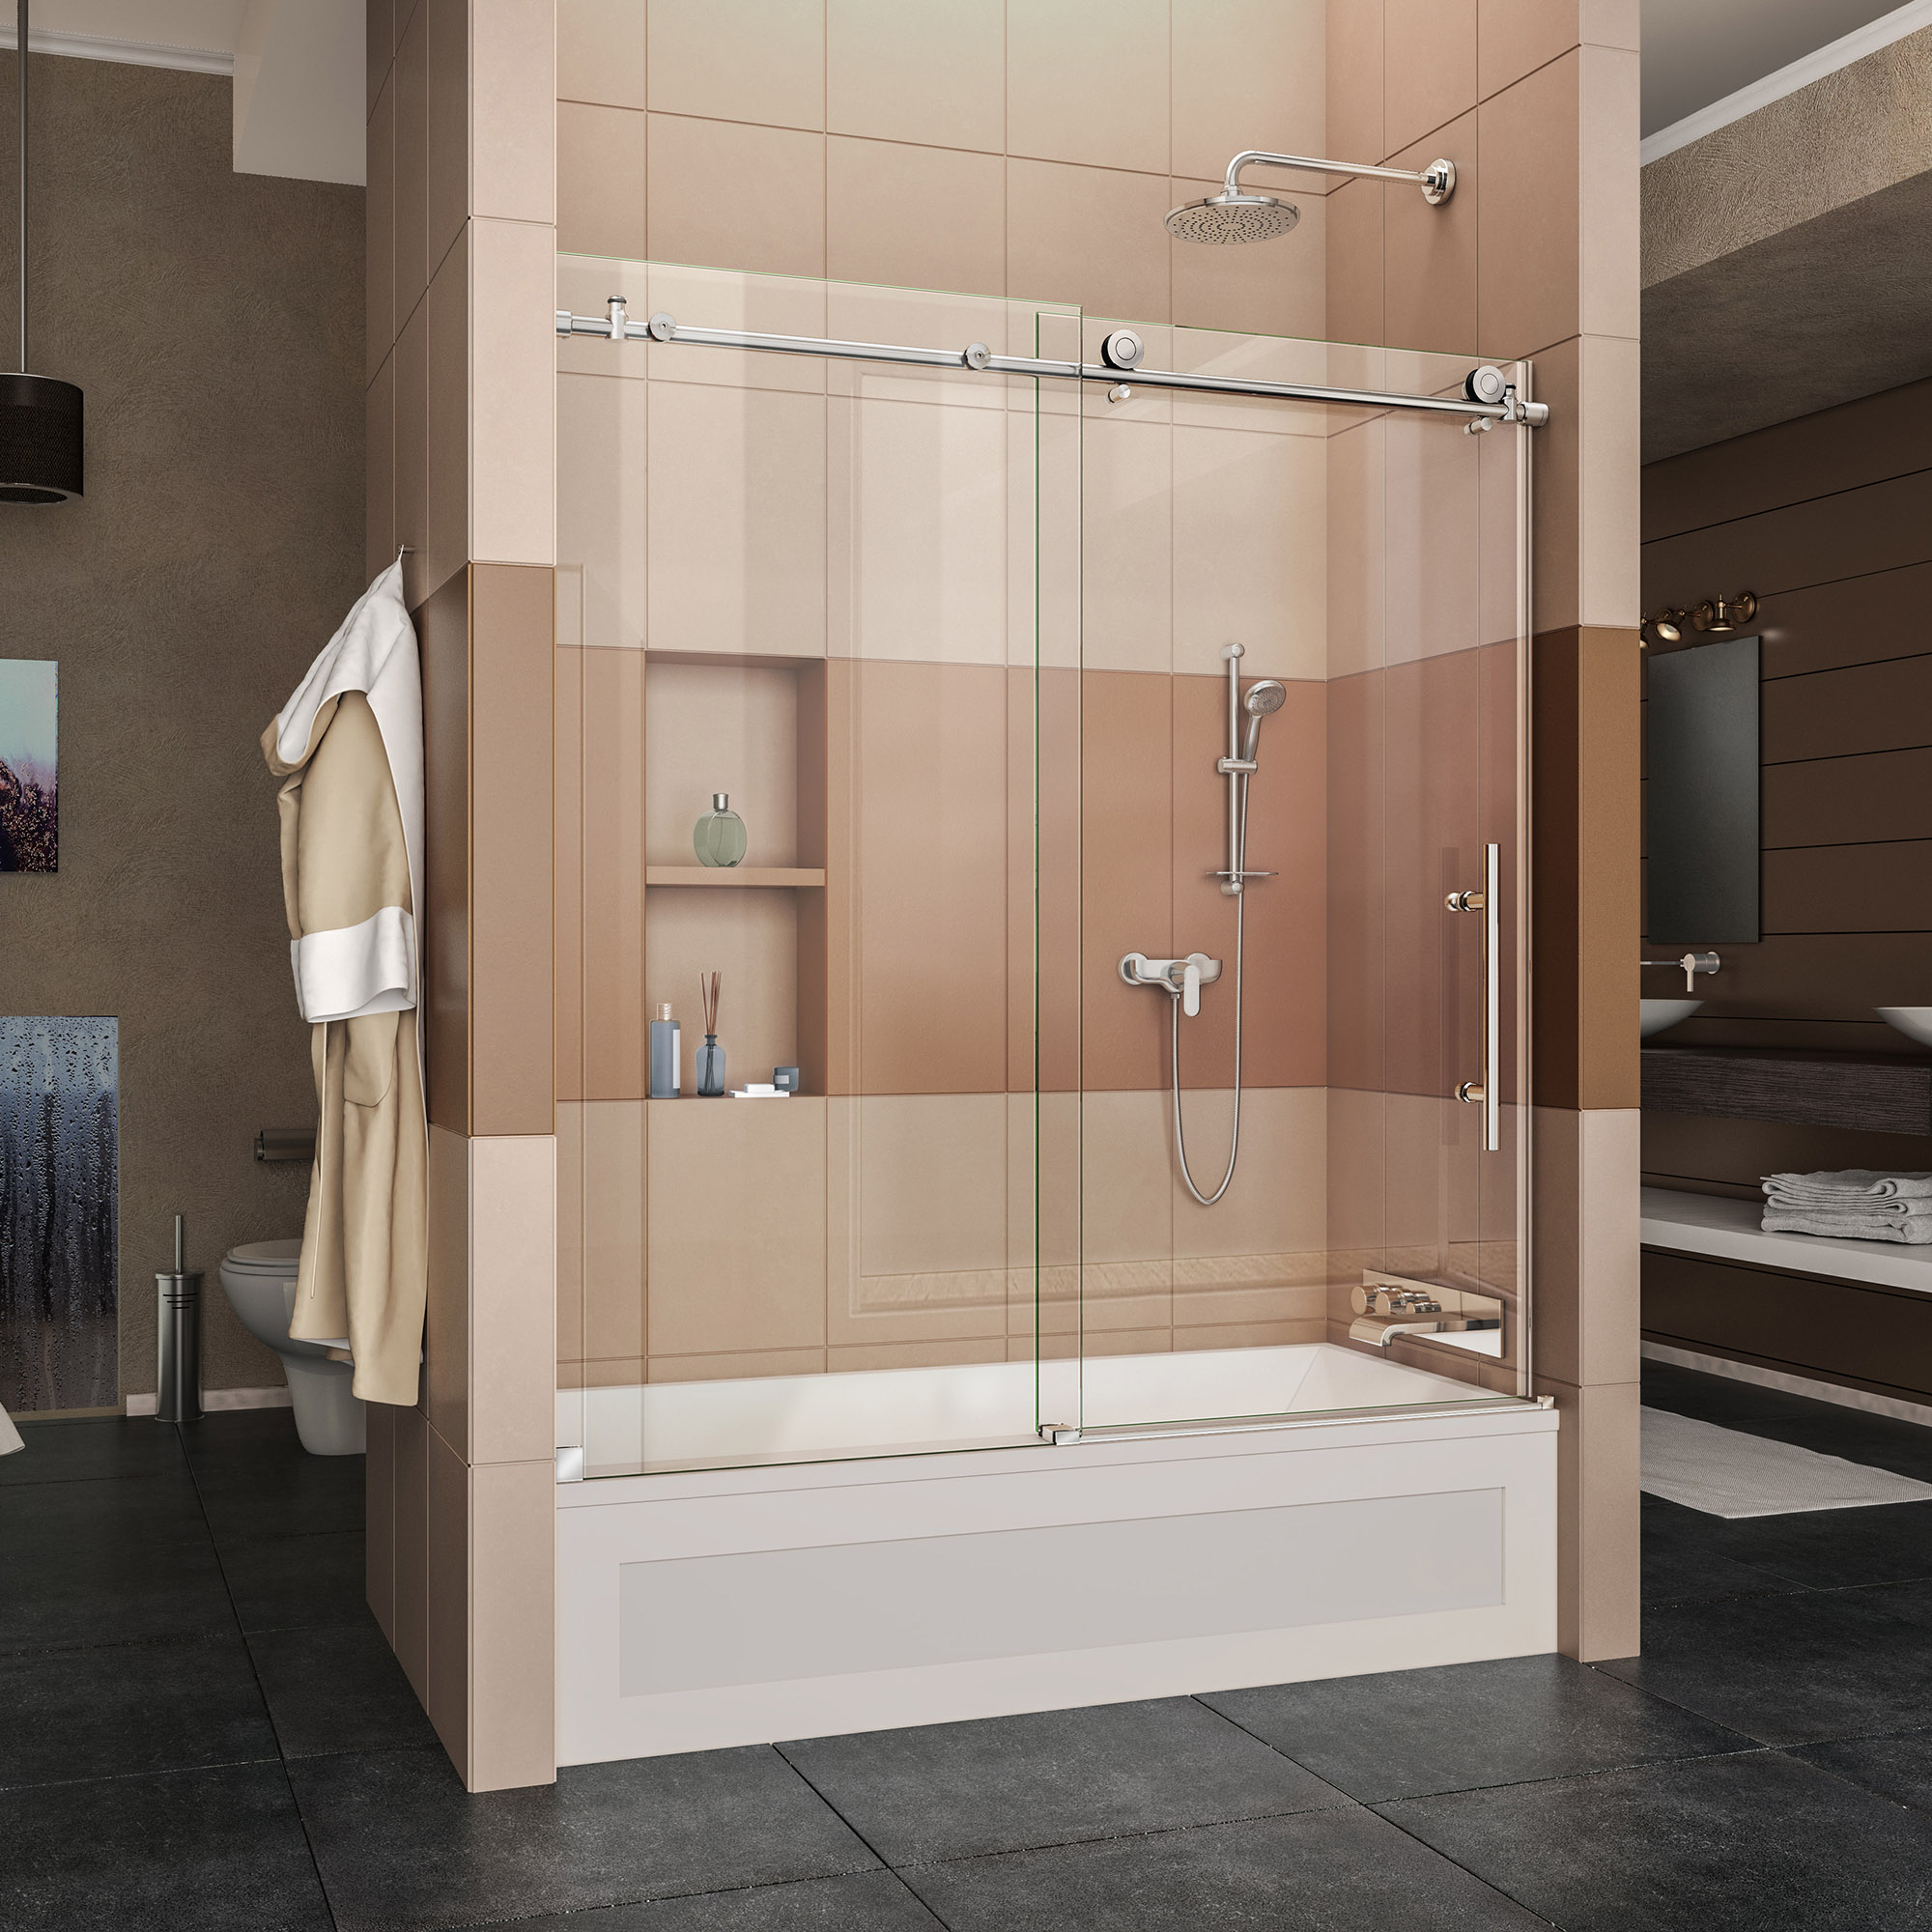 DreamLine Enigma-X 55-59 in. W x 62 in. H Fully Frameless Sliding Tub Door in Polished Stainless Steel